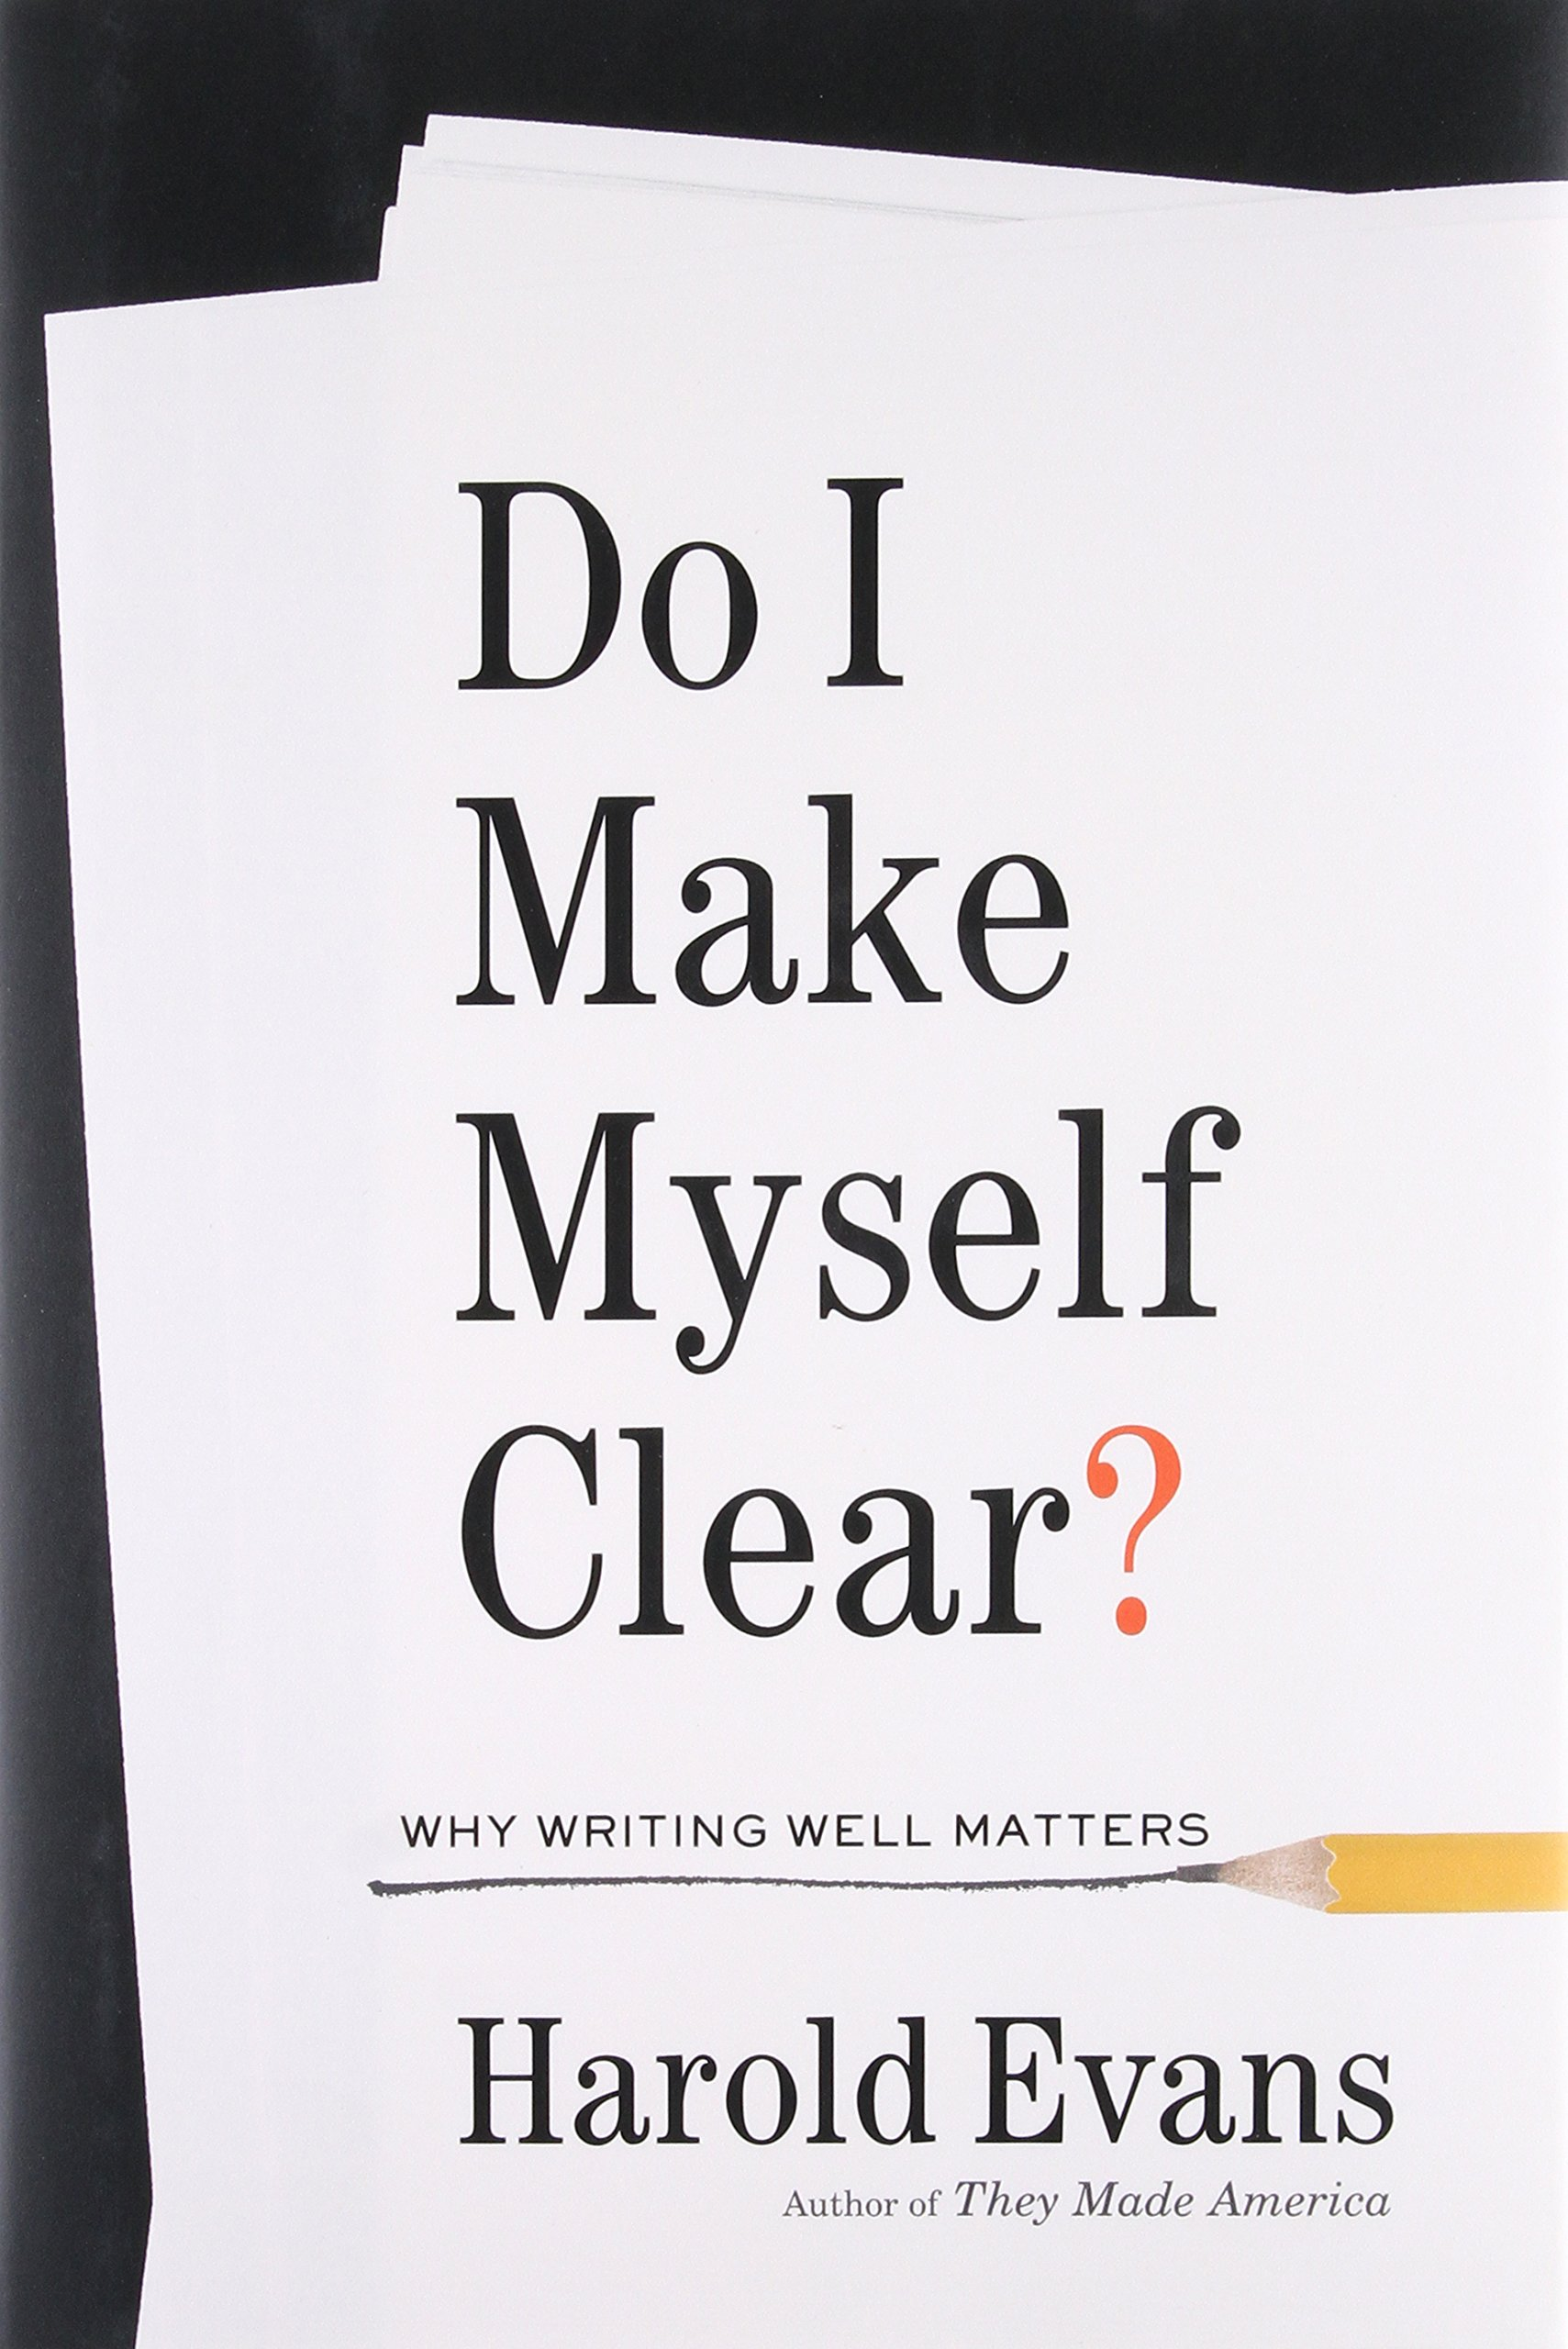 Do i make myself clear why writing well matters harold evans why writing well matters harold evans 9780316277174 amazon books fandeluxe